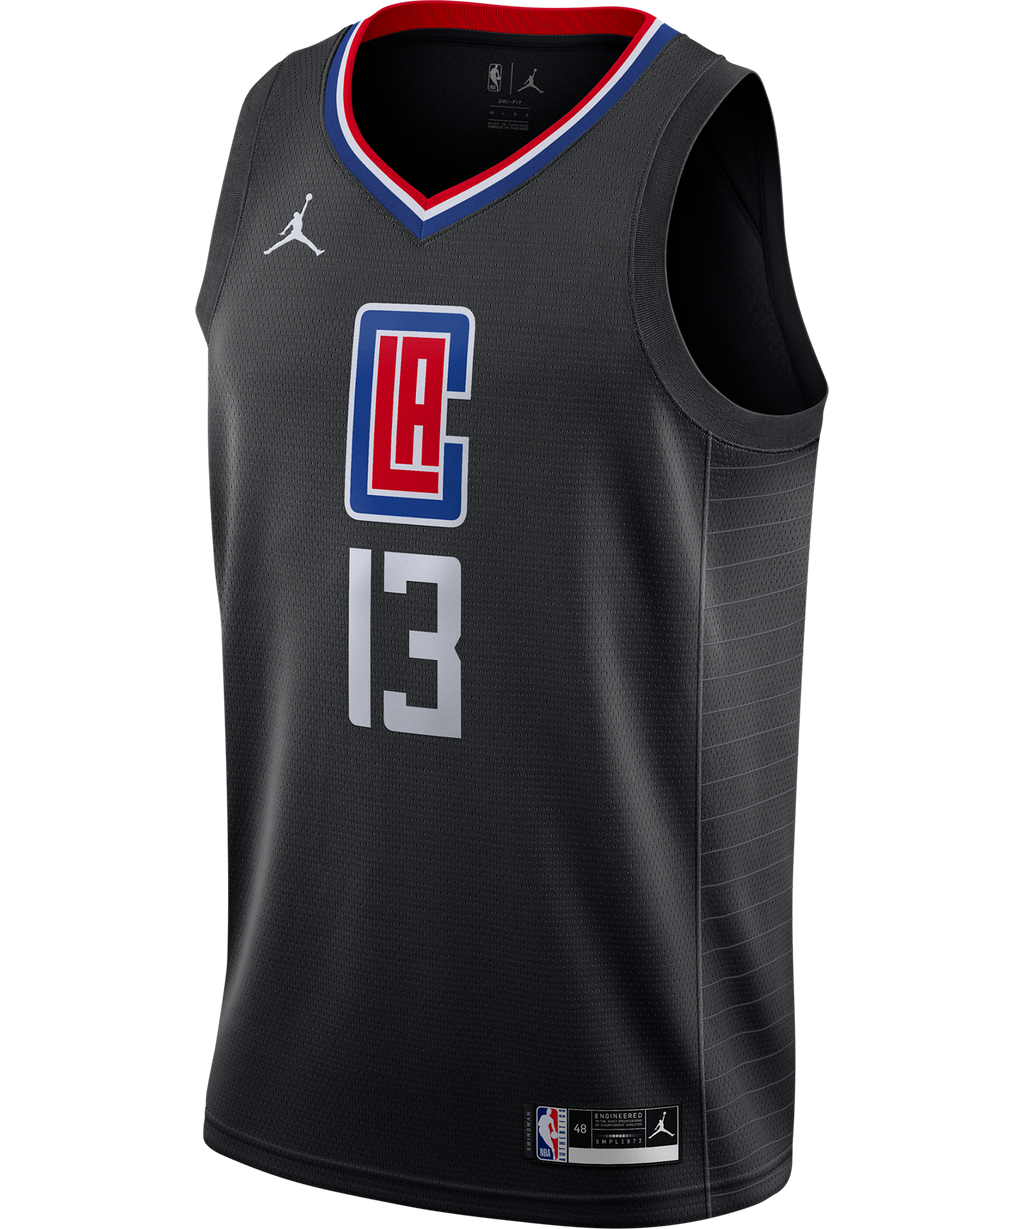 Paul George LA Clippers Jordan Statement Edition Jersey 20/21